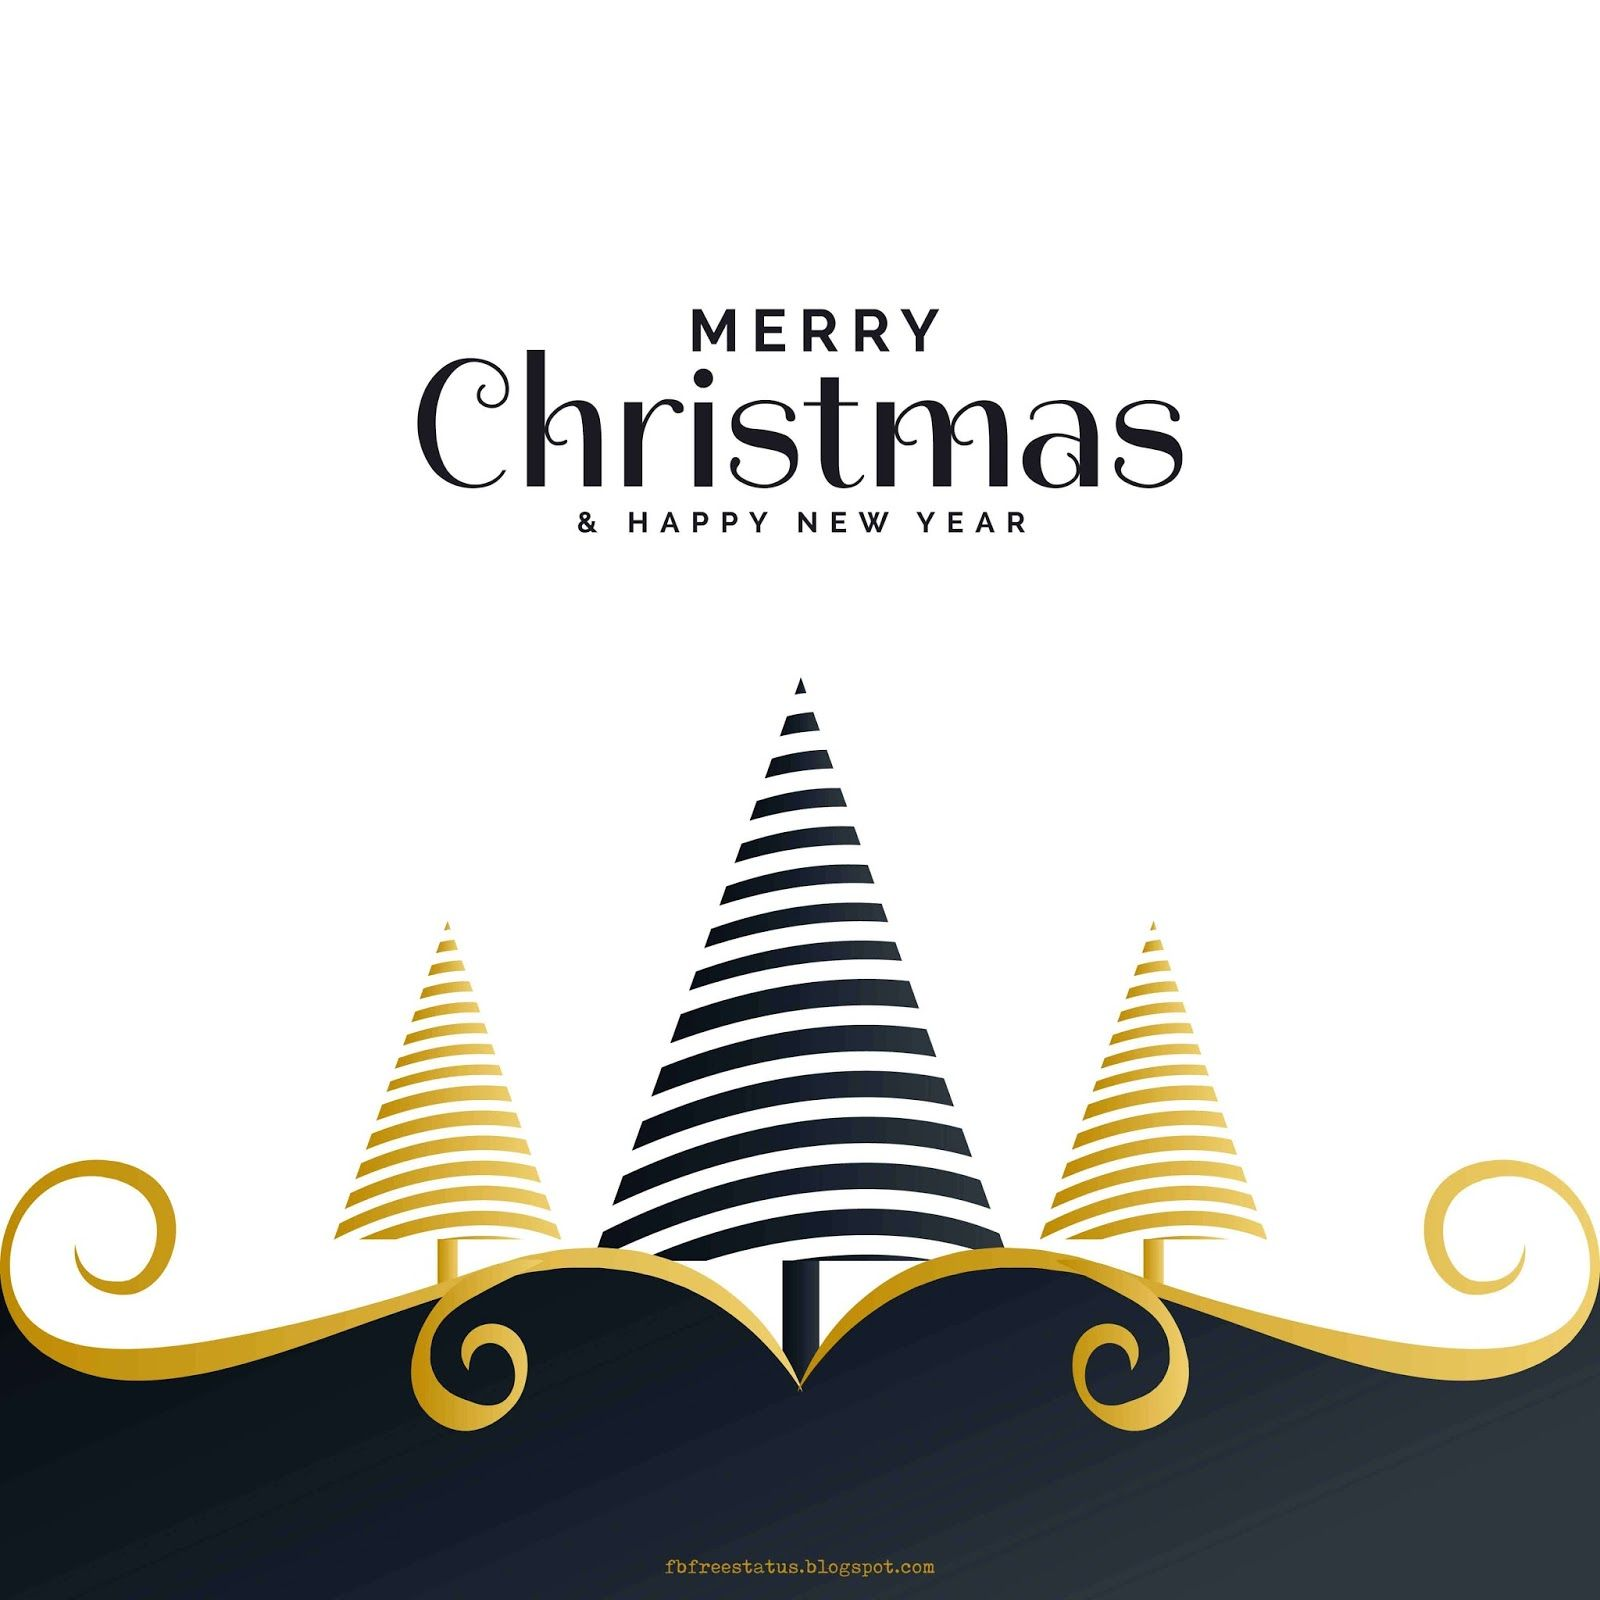 Free Christmas Wallpaper Backgrounds For puter